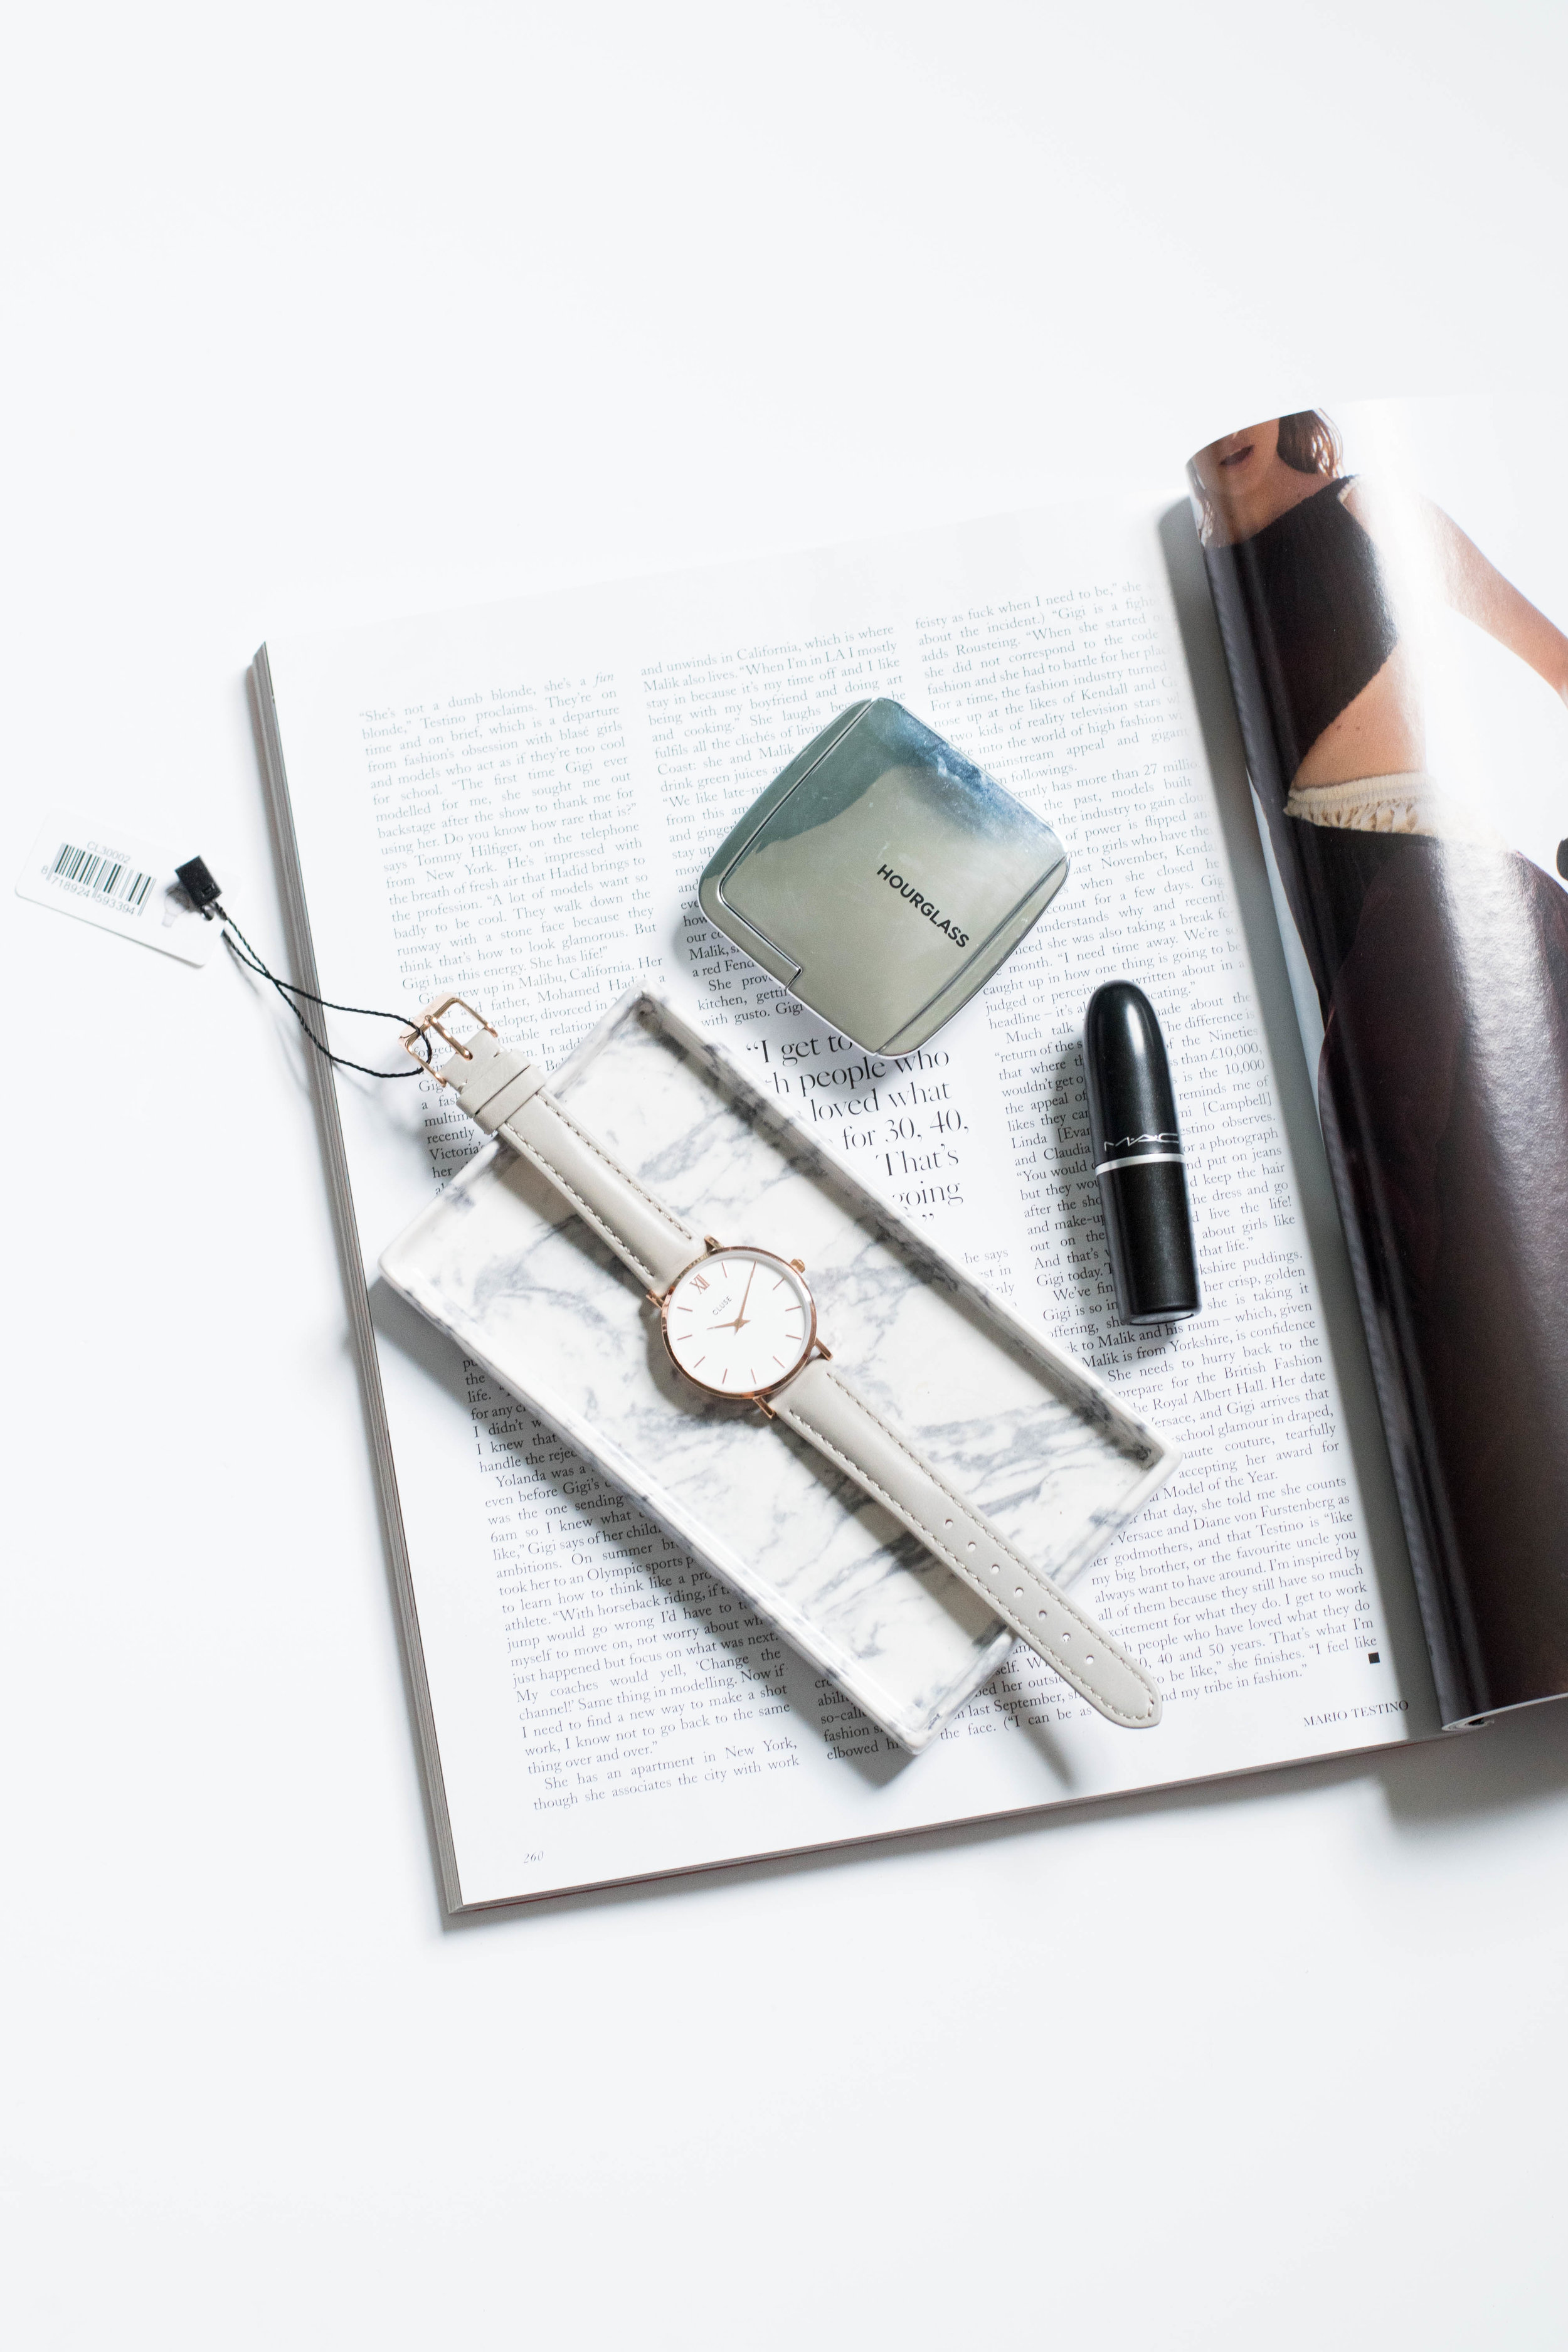 uk beauty blogger, manchester beauty blogger, manchester fashion blogger, uk fashion blogger, manchester lifestyle blogger, uk lifestyle blogger, beauty, fashion, monochrome watches, hip watches